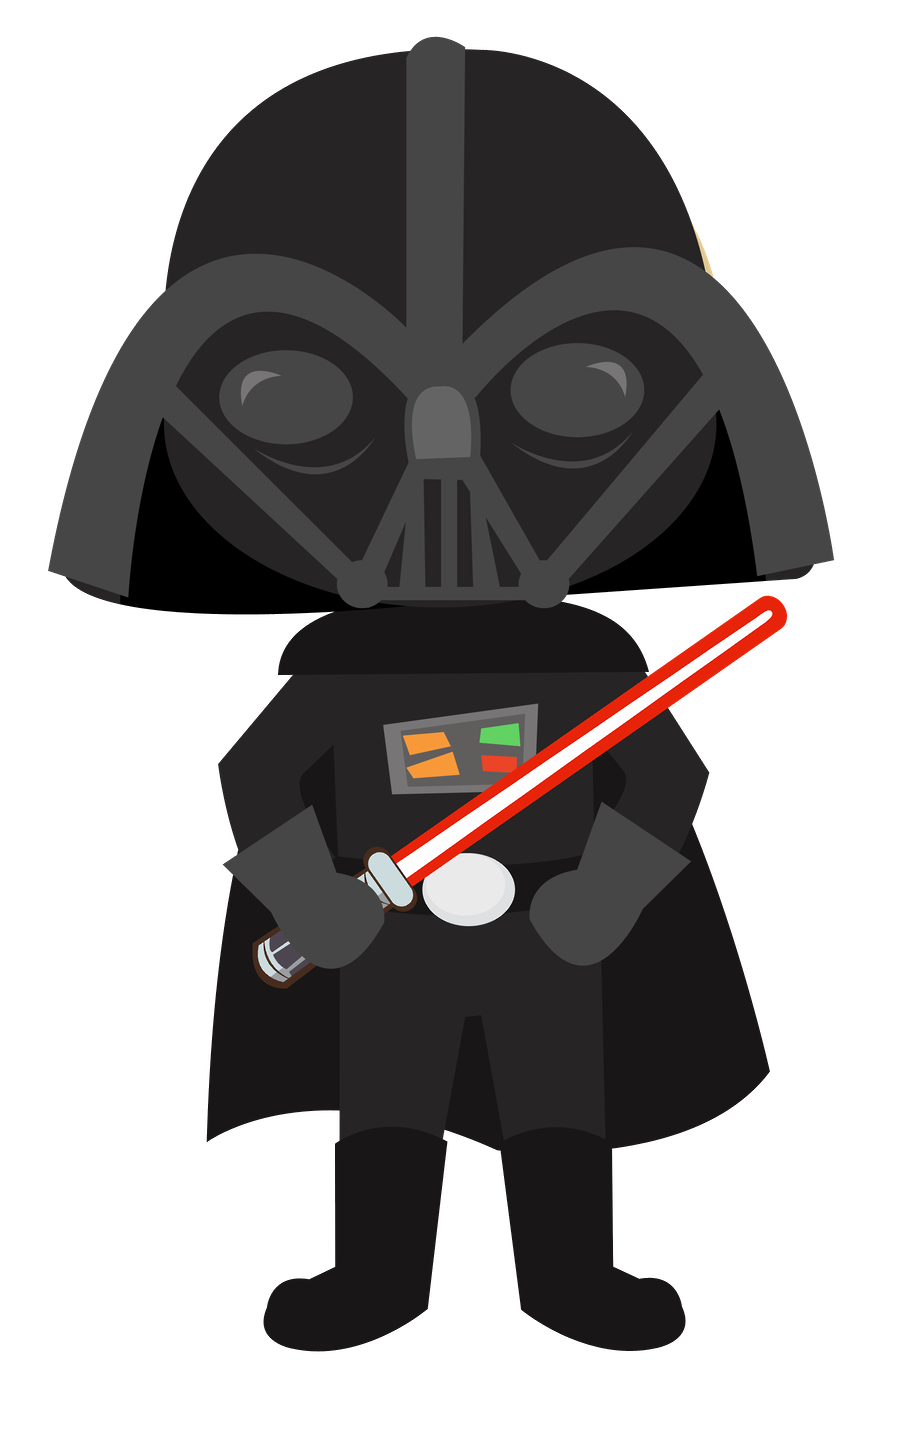 Star wars force clipart picture transparent download Star Wars - Minus | Felt Board Images | Pinterest | Star, Darth ... picture transparent download